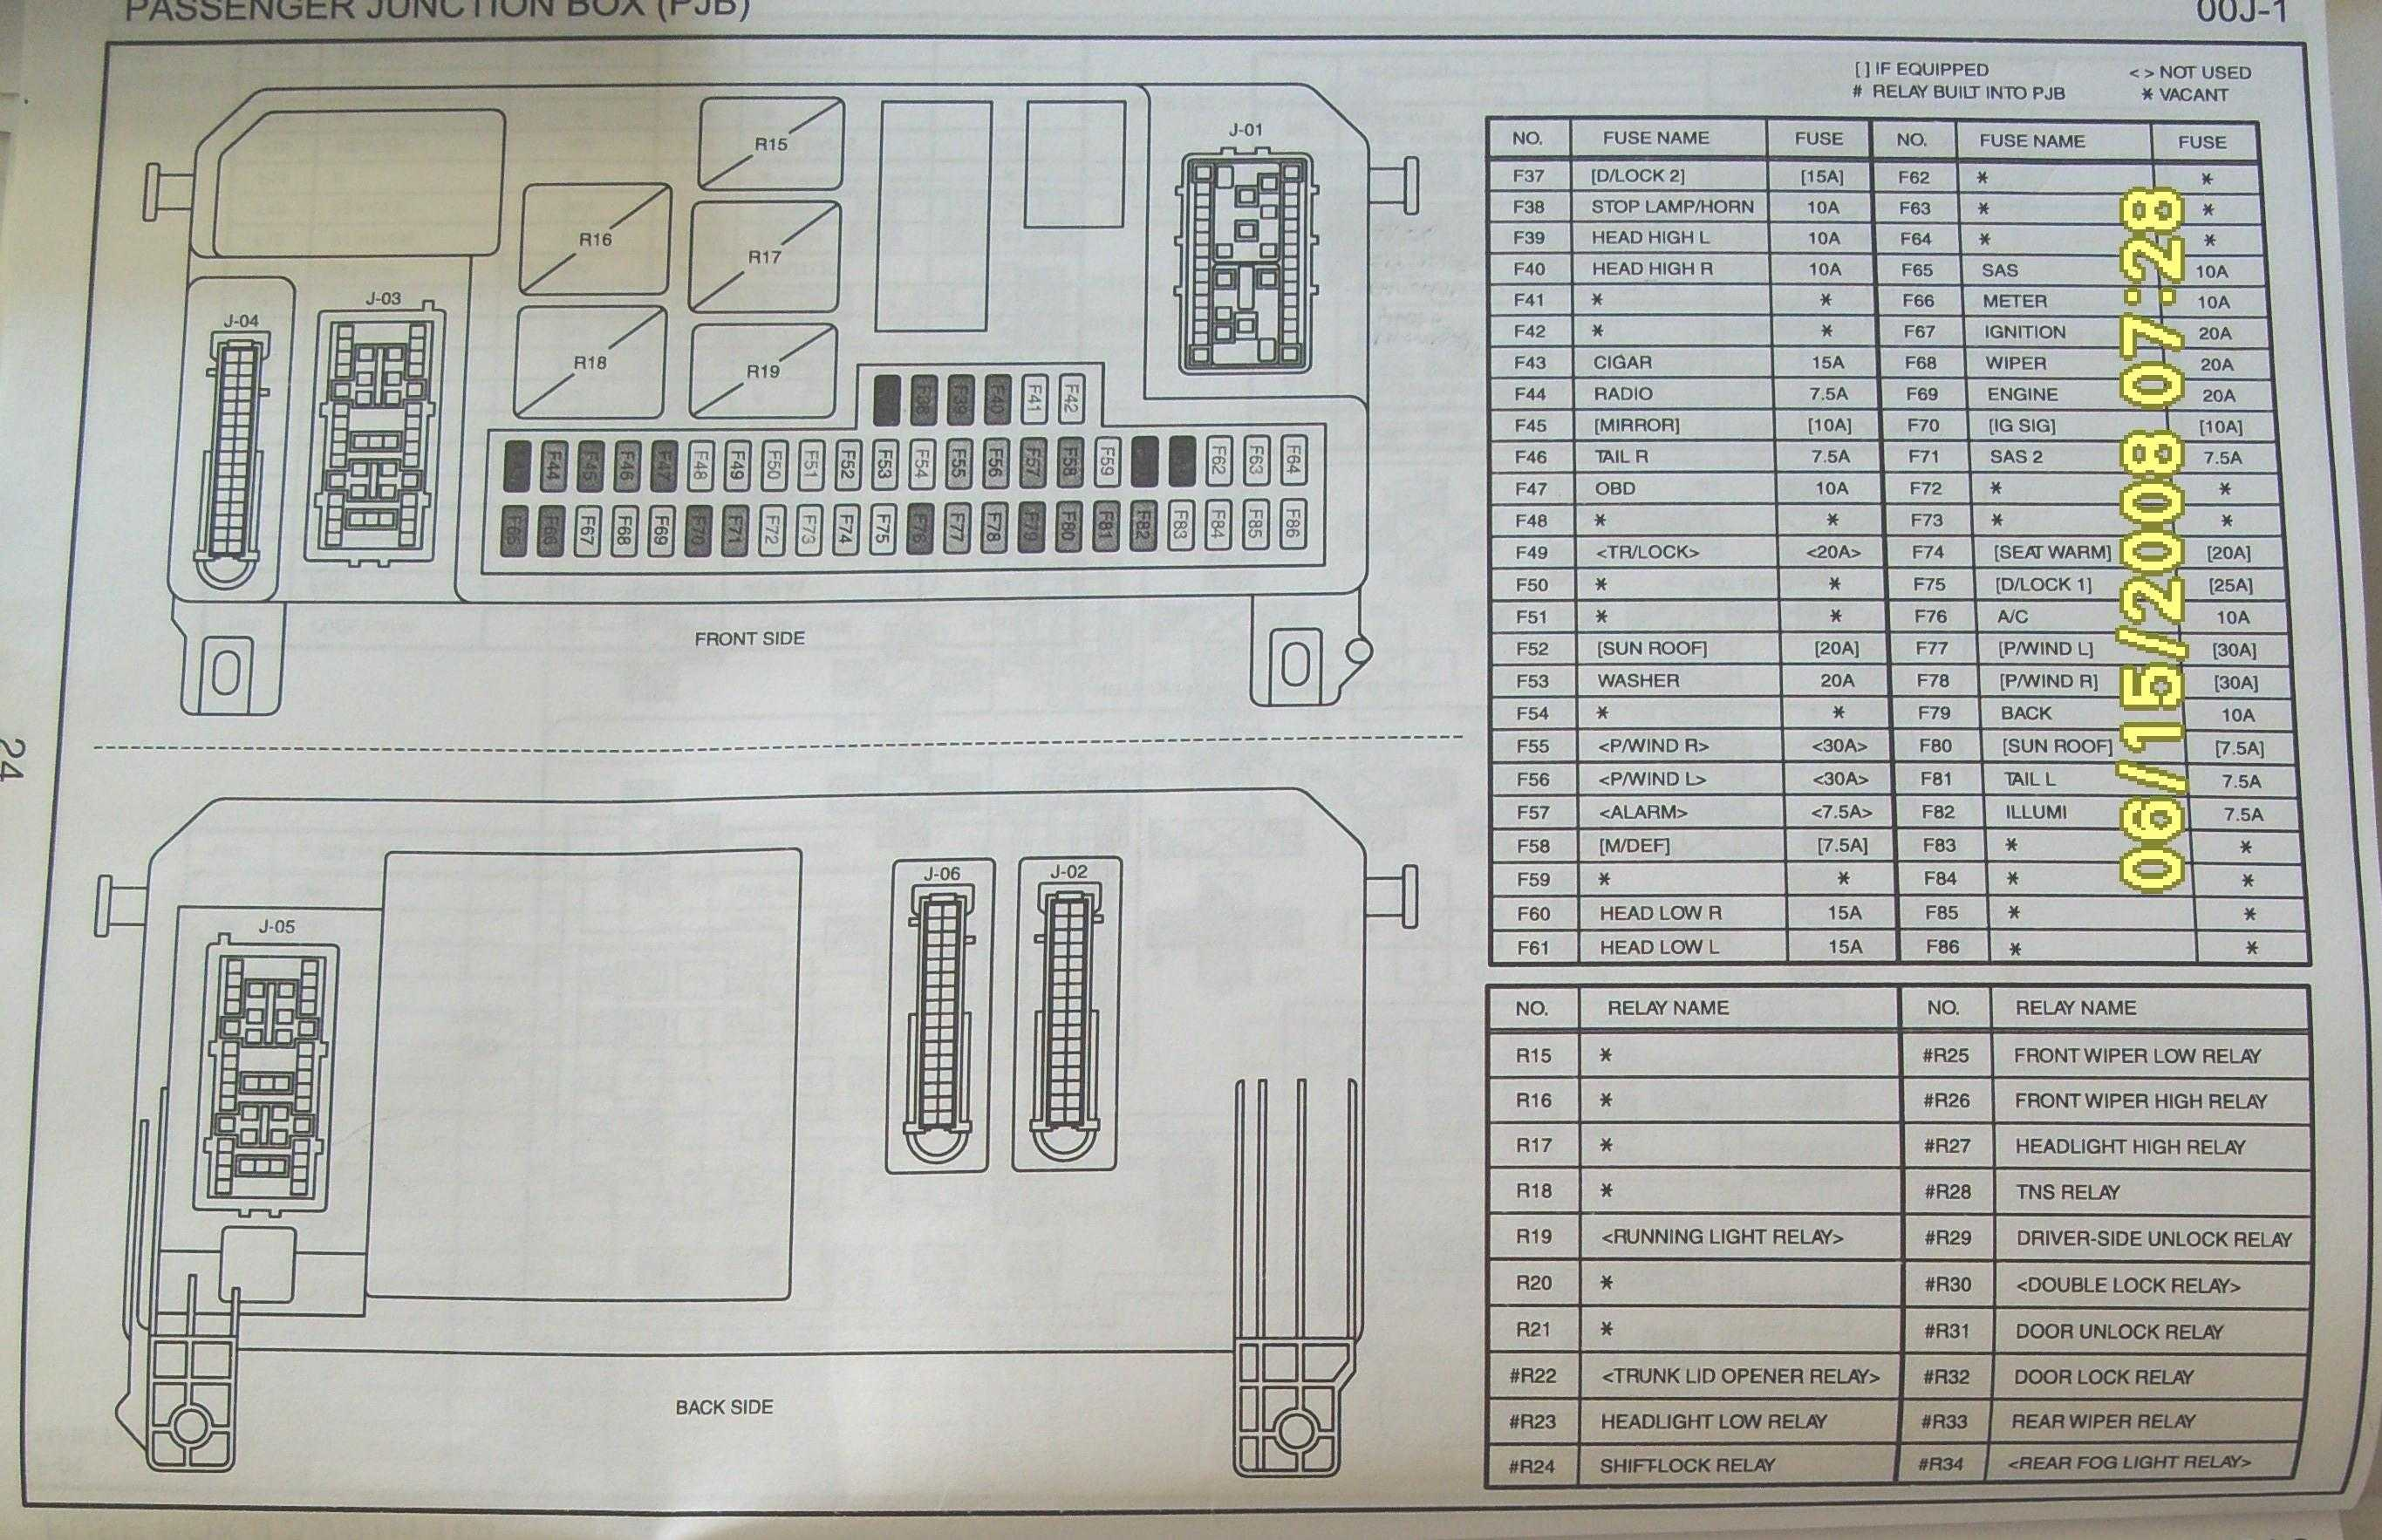 2008 Mazda 6 Headlight Wiring Schematic 39 Diagram Images 3 Diagrams 8366d1276288059 Headlights Horn Wont Shutoff S1050443 Commented Pg1 50resize665